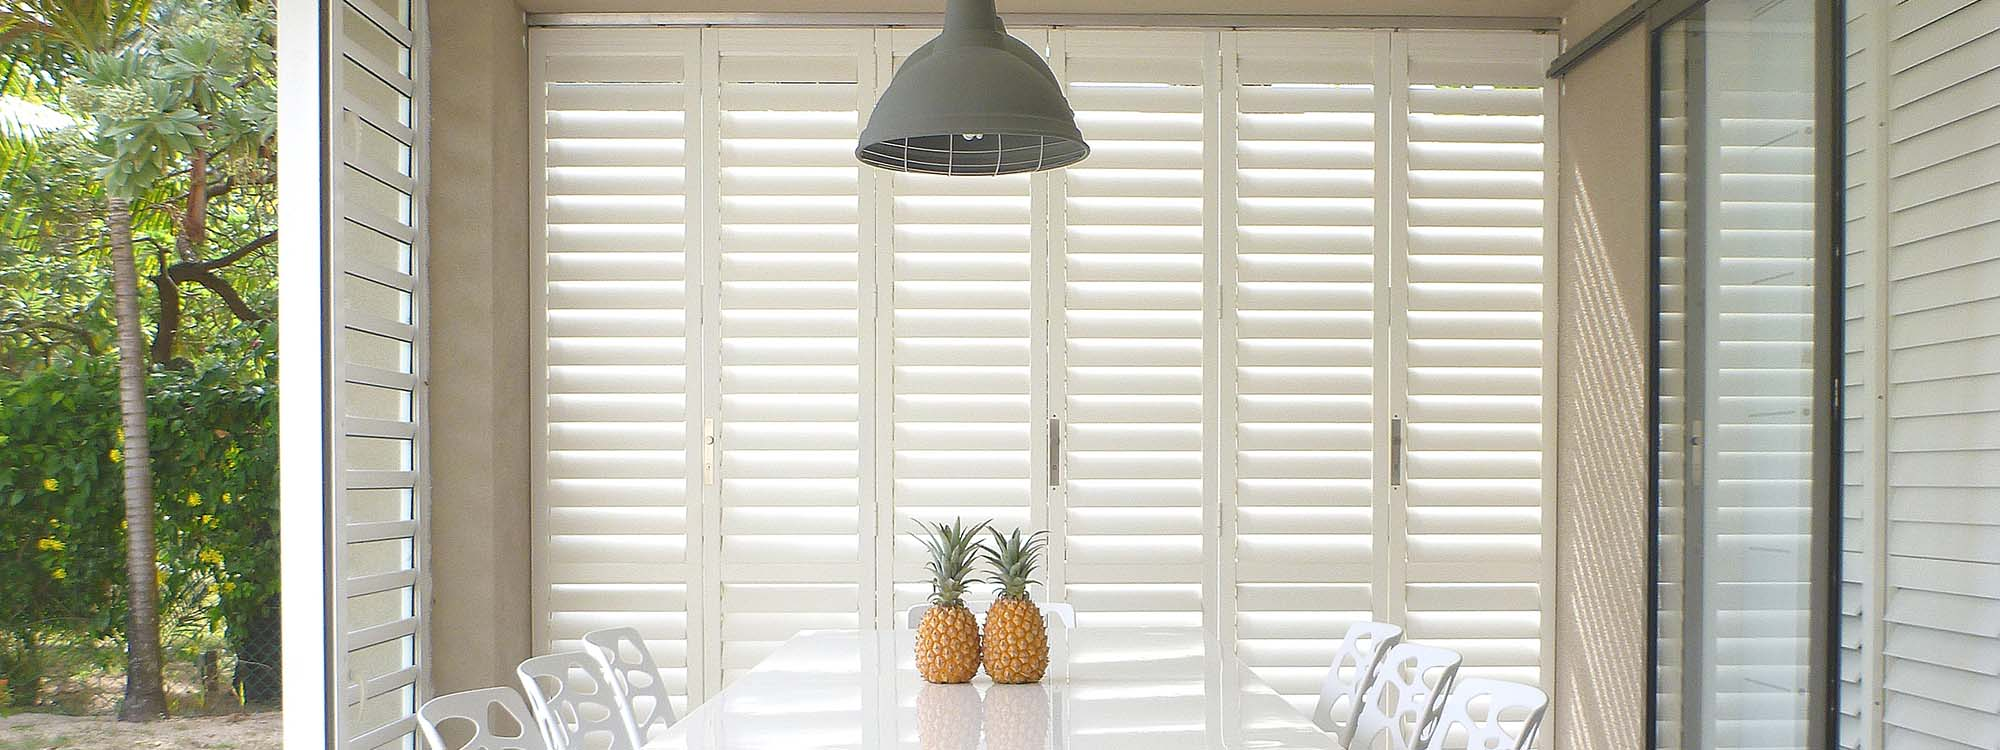 Security-shutters-patio-pineapple-dining